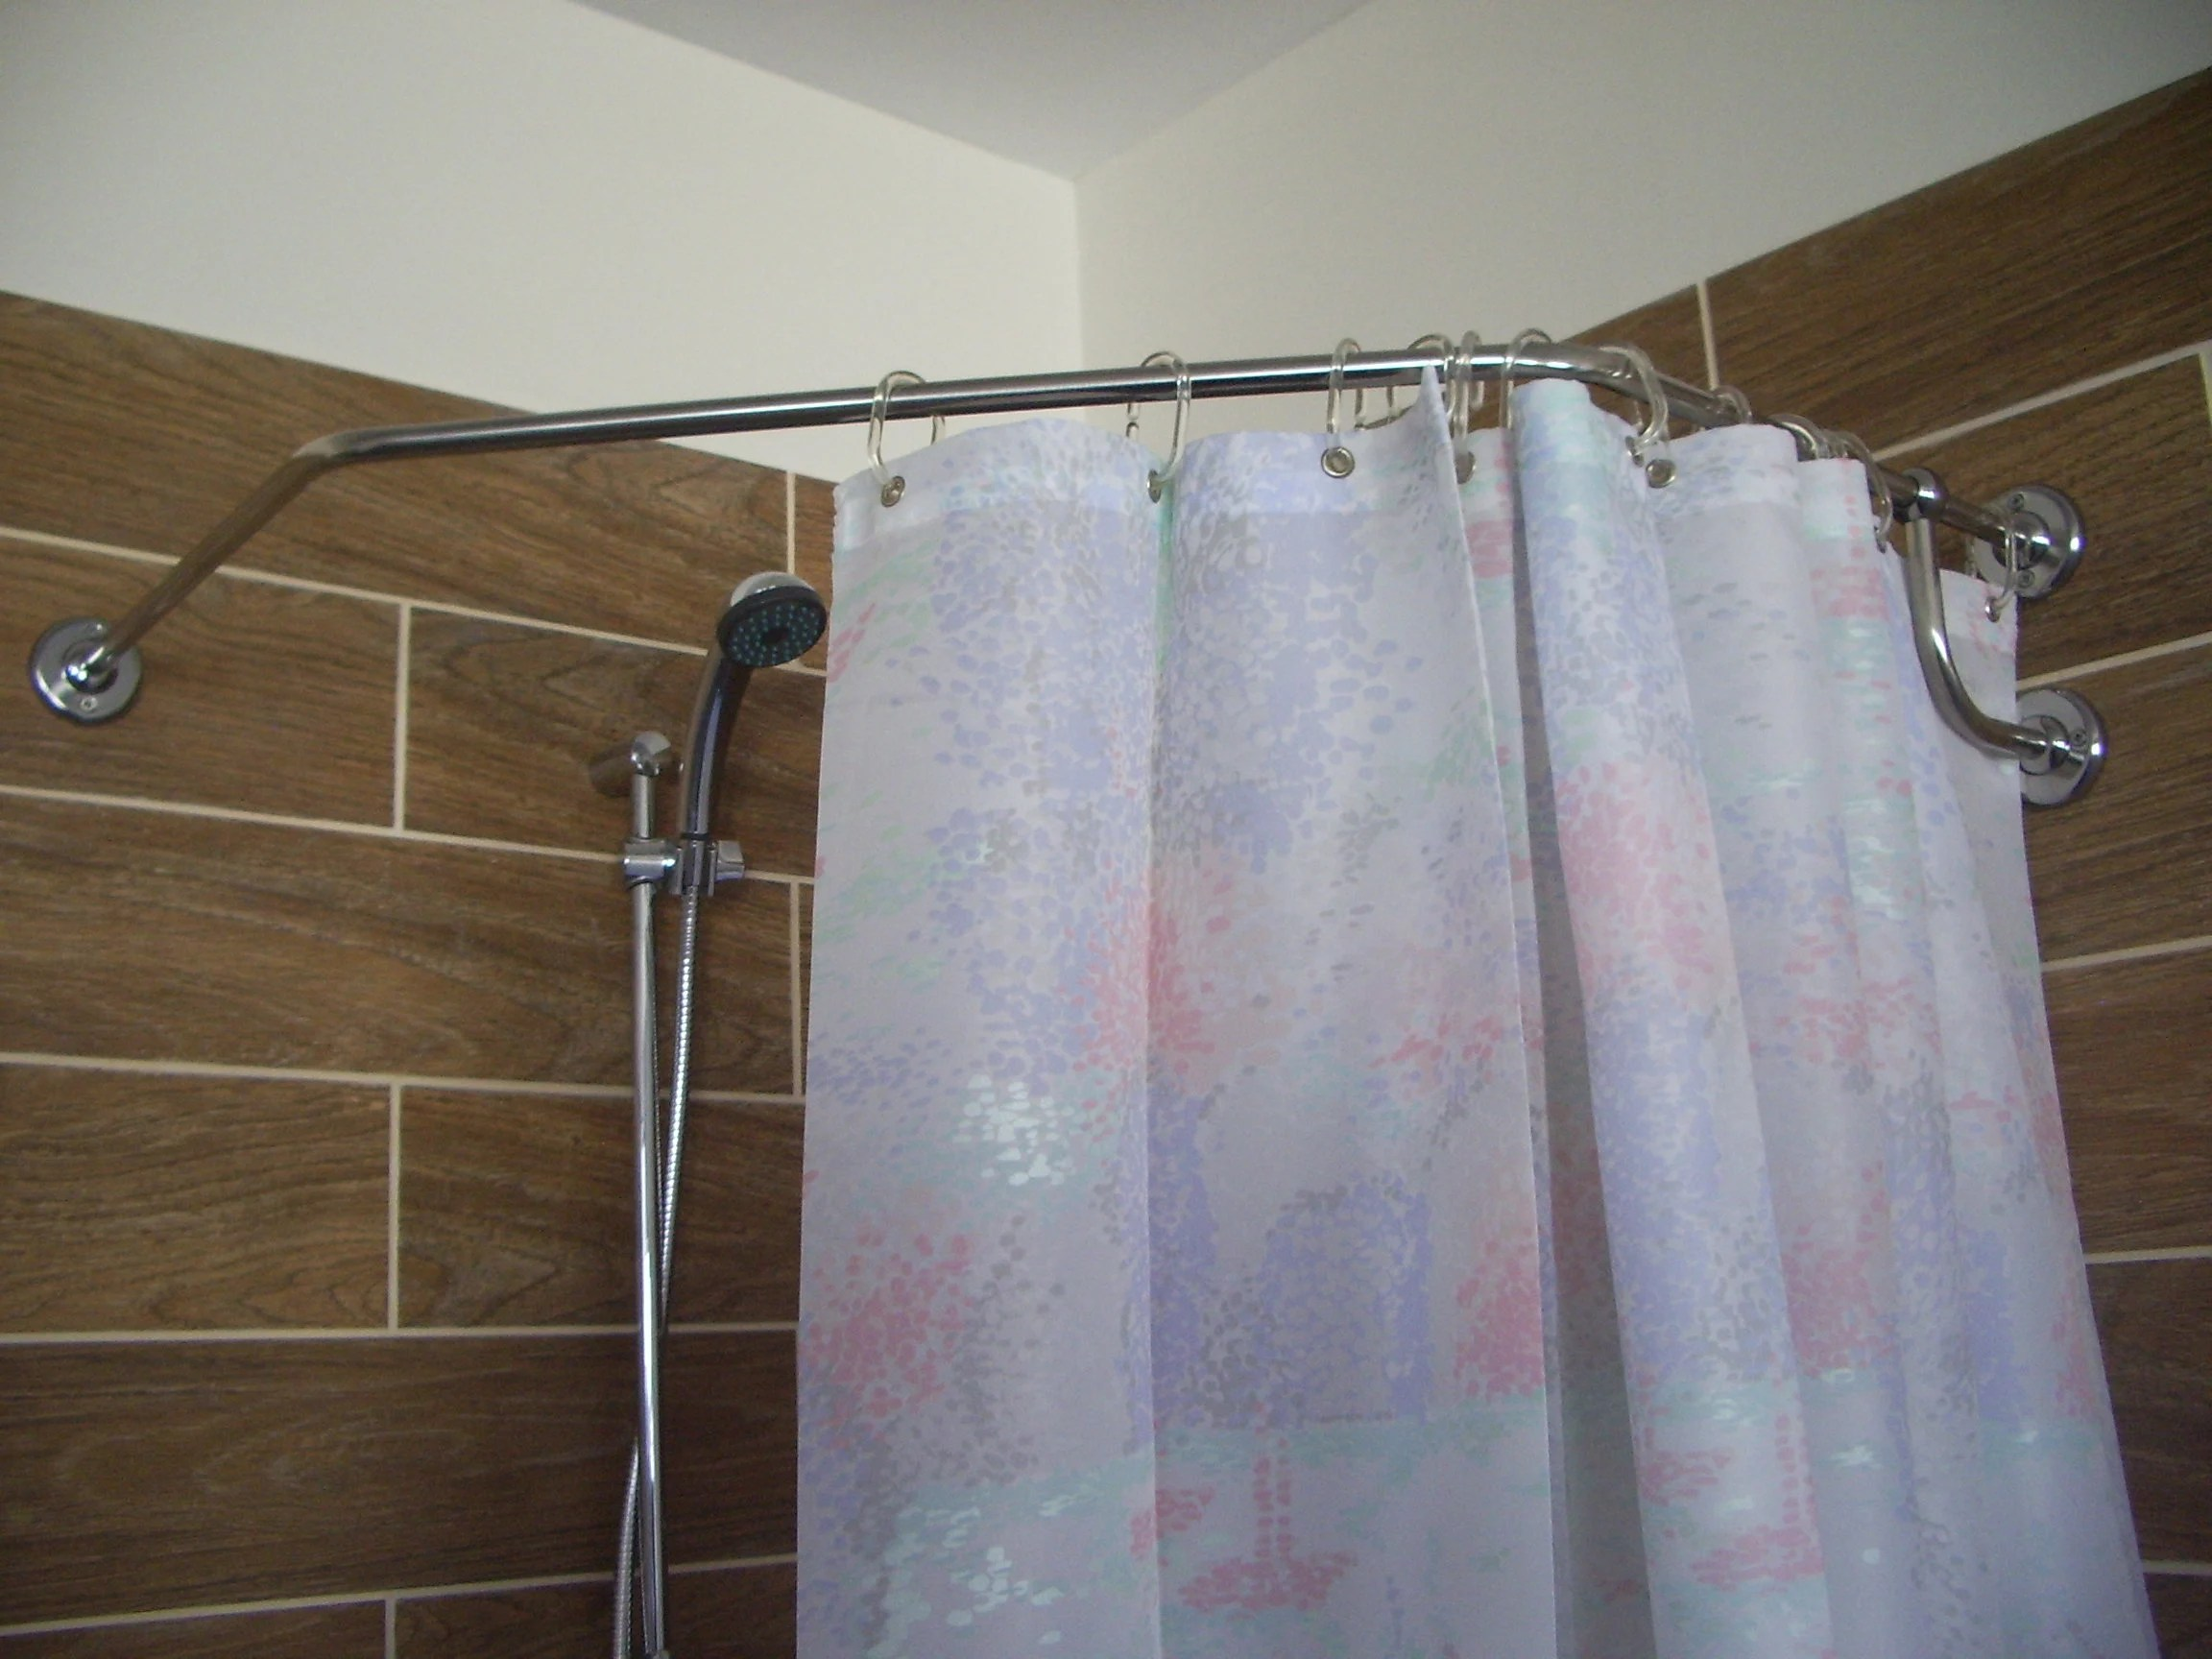 diamond corner shower curtain rod for bathroom fitting and dressing room for wall montage